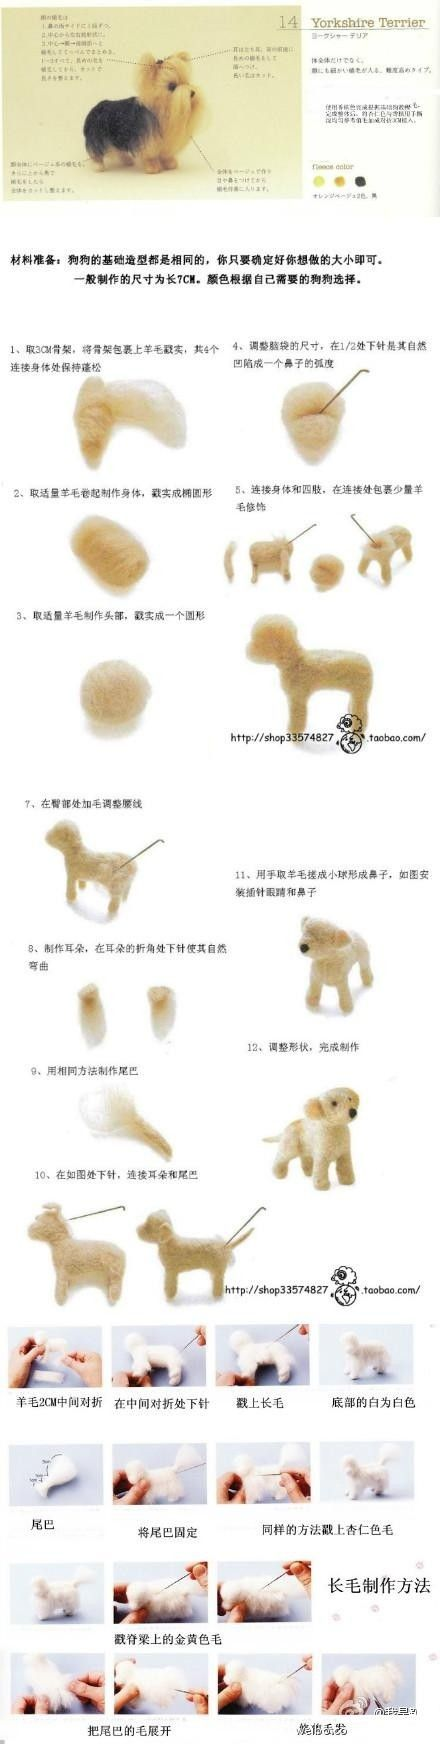 Felted Yorkshire terrier, step by step.